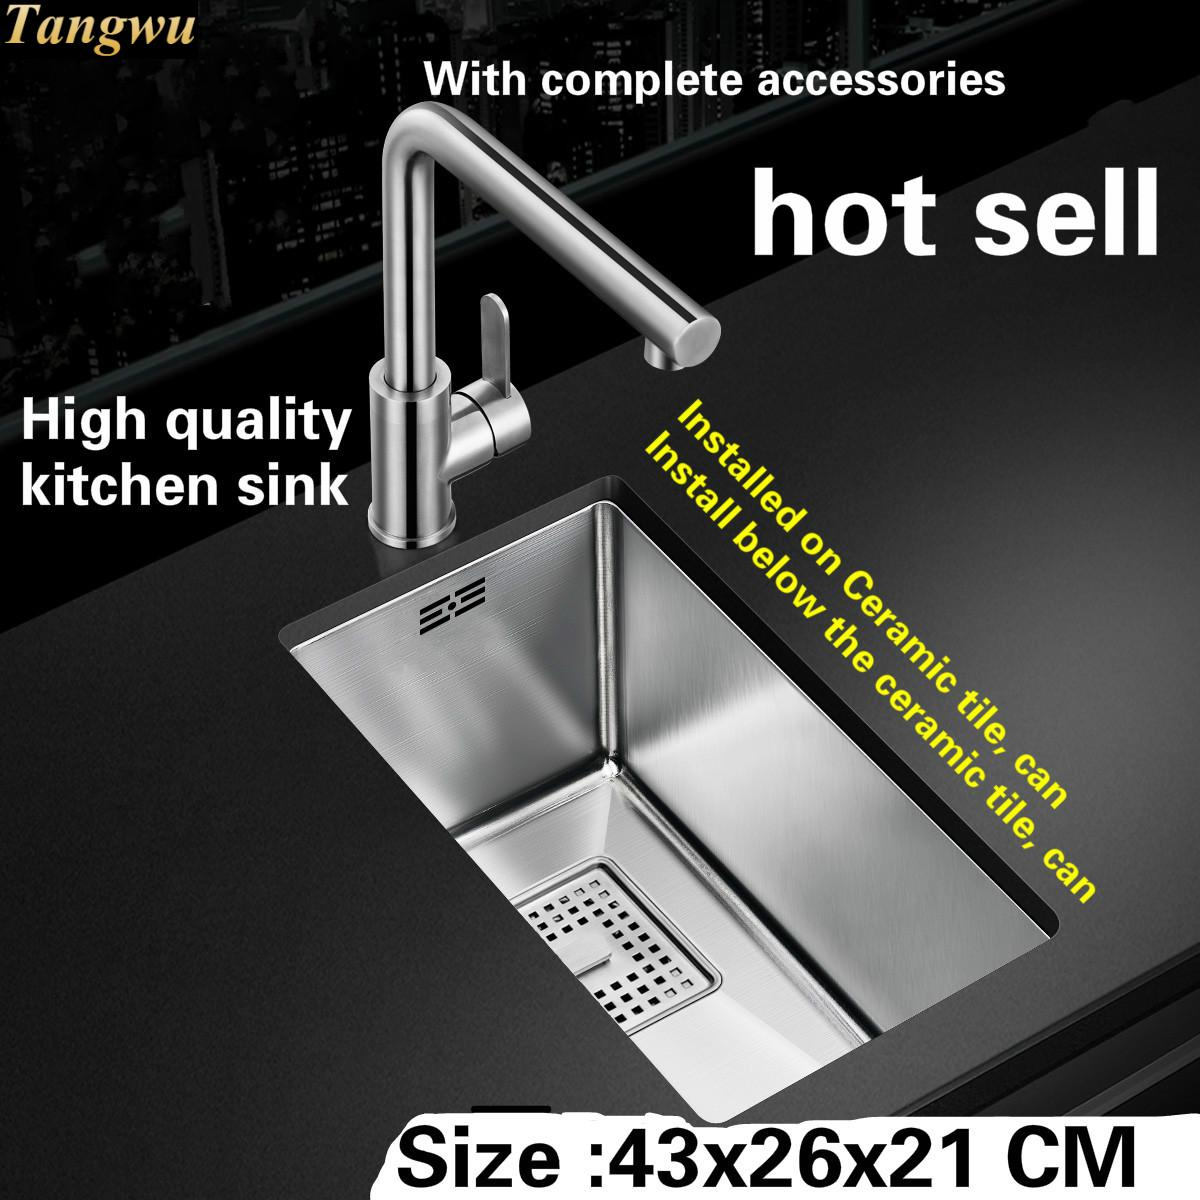 Tangwu Fashionable Apartment High-grade Kitchen Sink 304 Stainless Steel Thick Manual Small Single Slot 430x260x210 MM